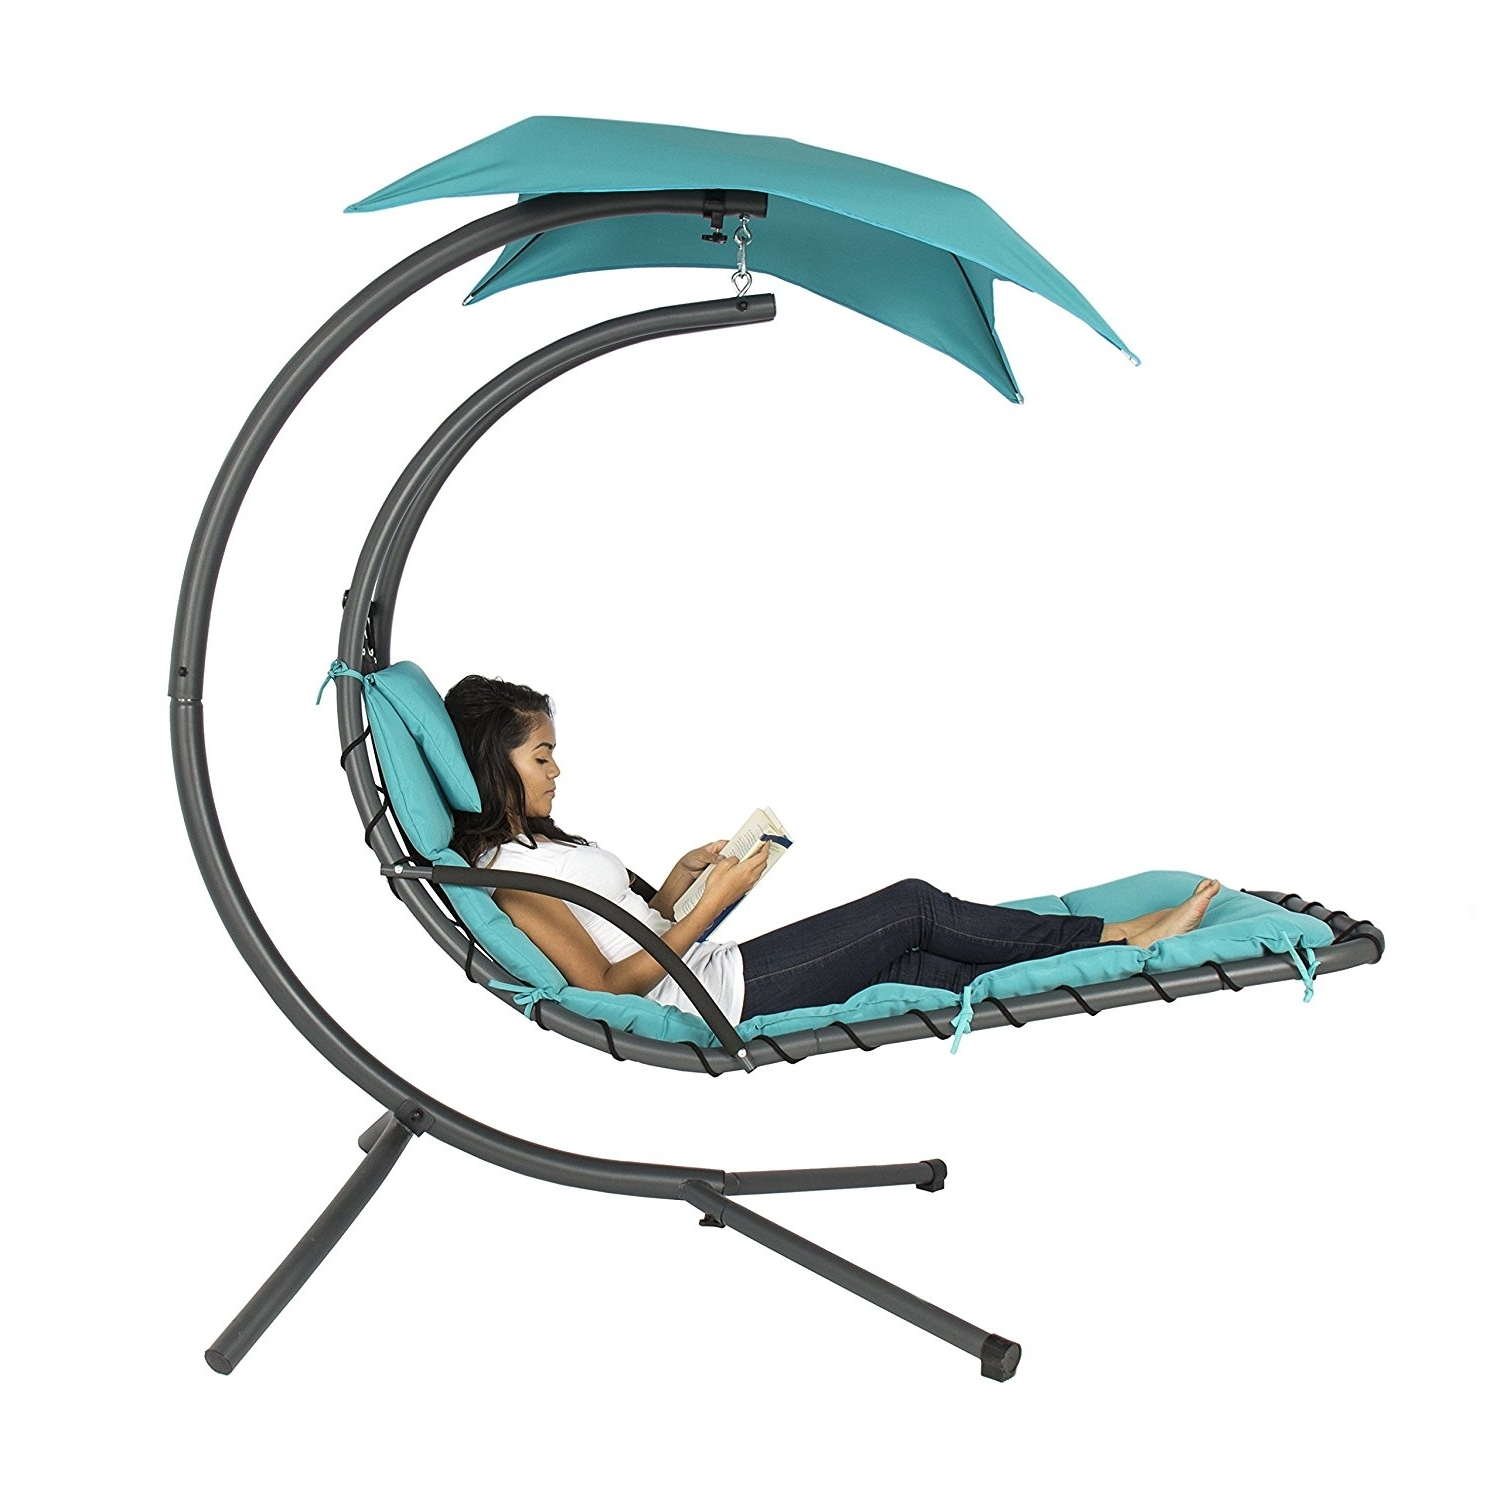 Most Popular Chaise Lounge Chair With Canopy In Amazon: Best Choice Products Hanging Chaise Lounger Chair Arc (View 13 of 15)